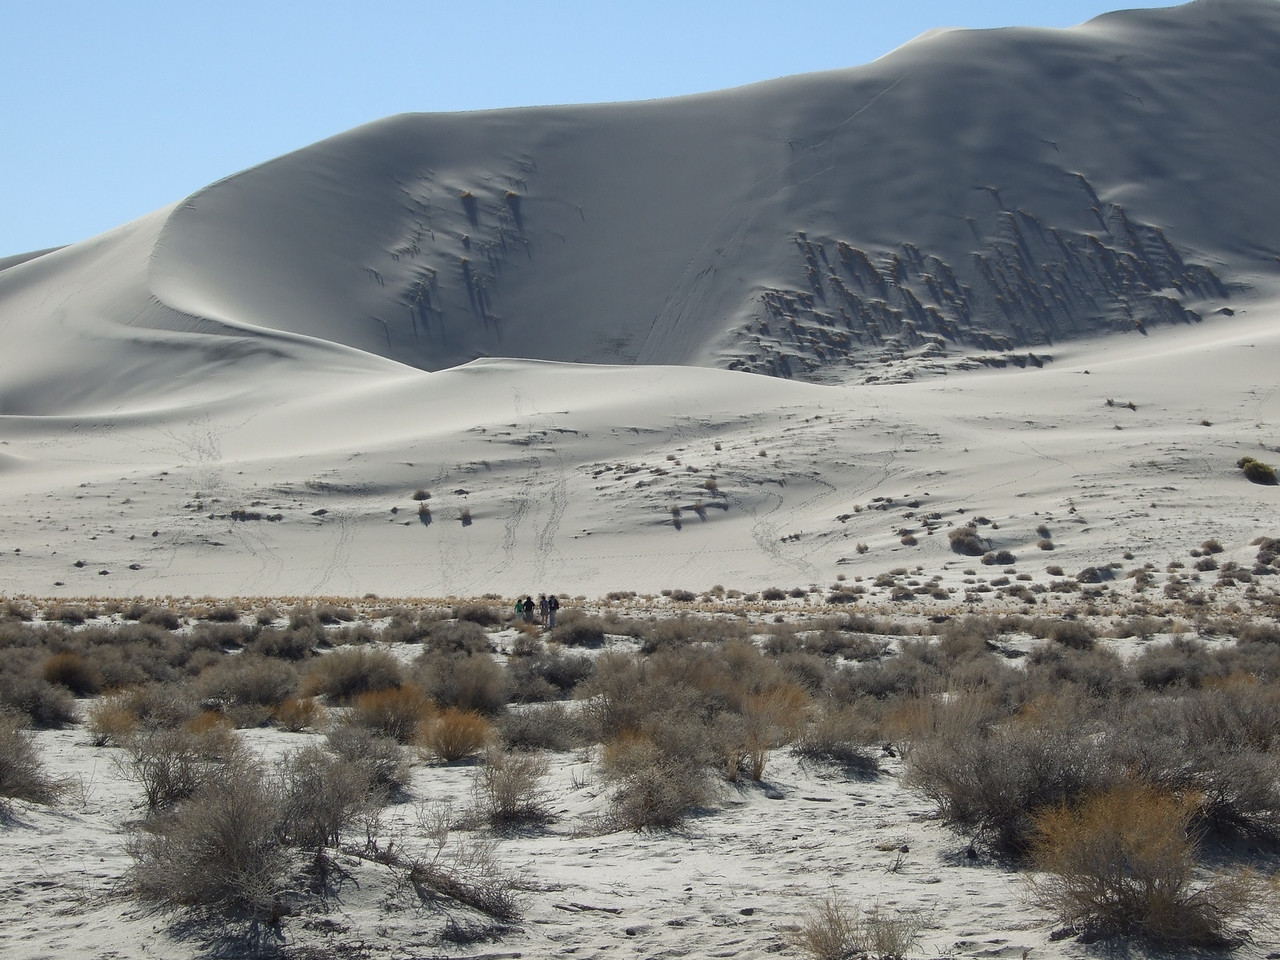 A closer view; the scale of the dune is mind-boggling